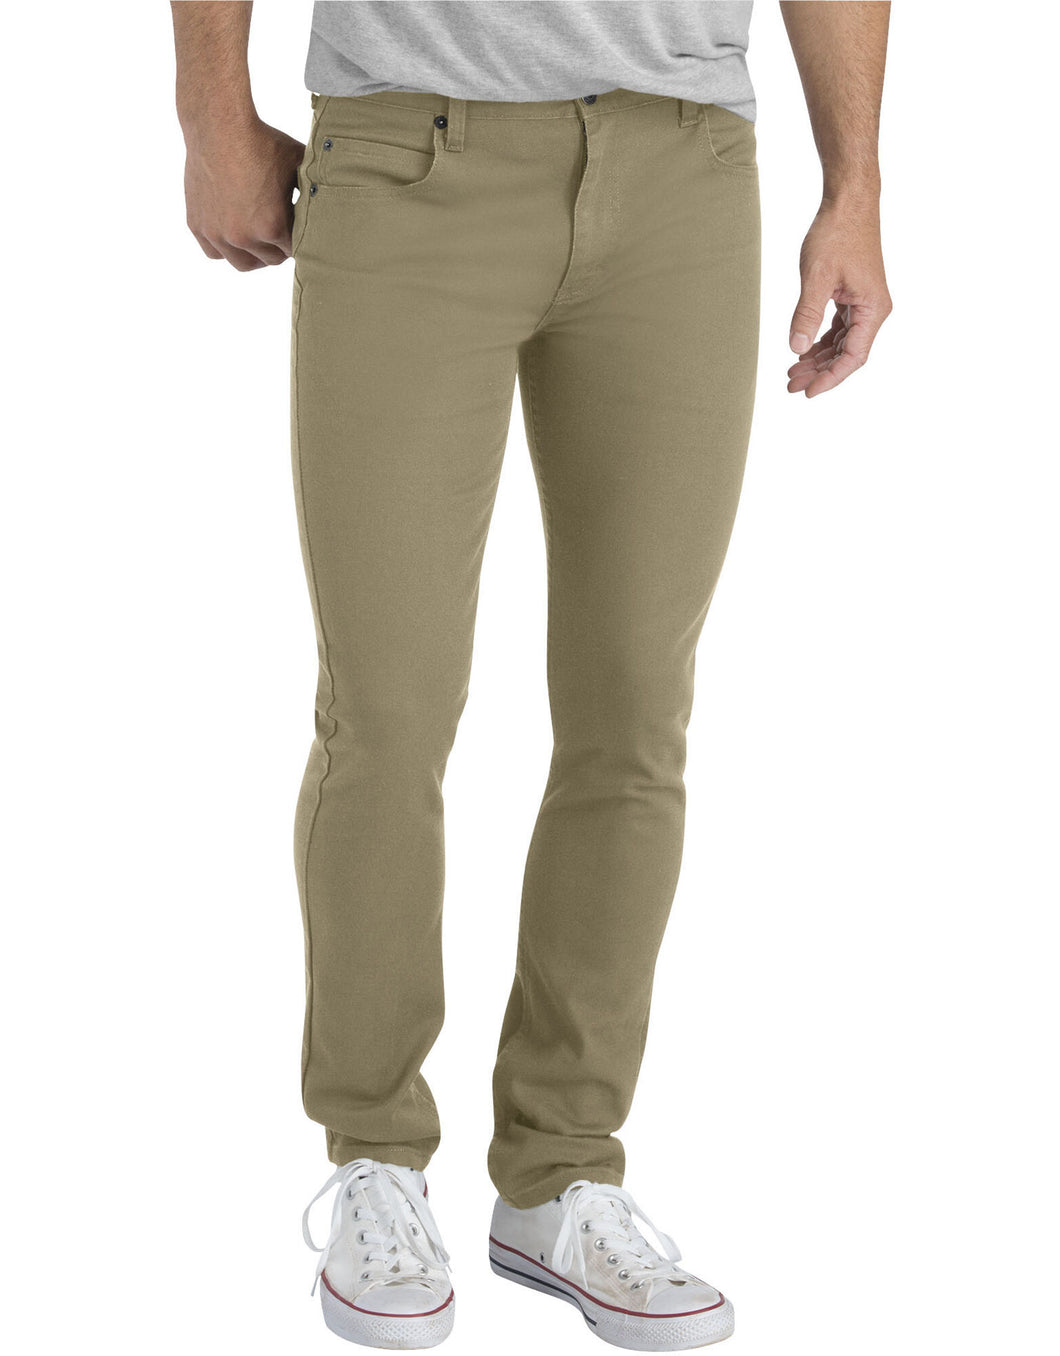 DICKIES MENS SLIM FIT SKINNY LEG 5-POCKET PANT XD810